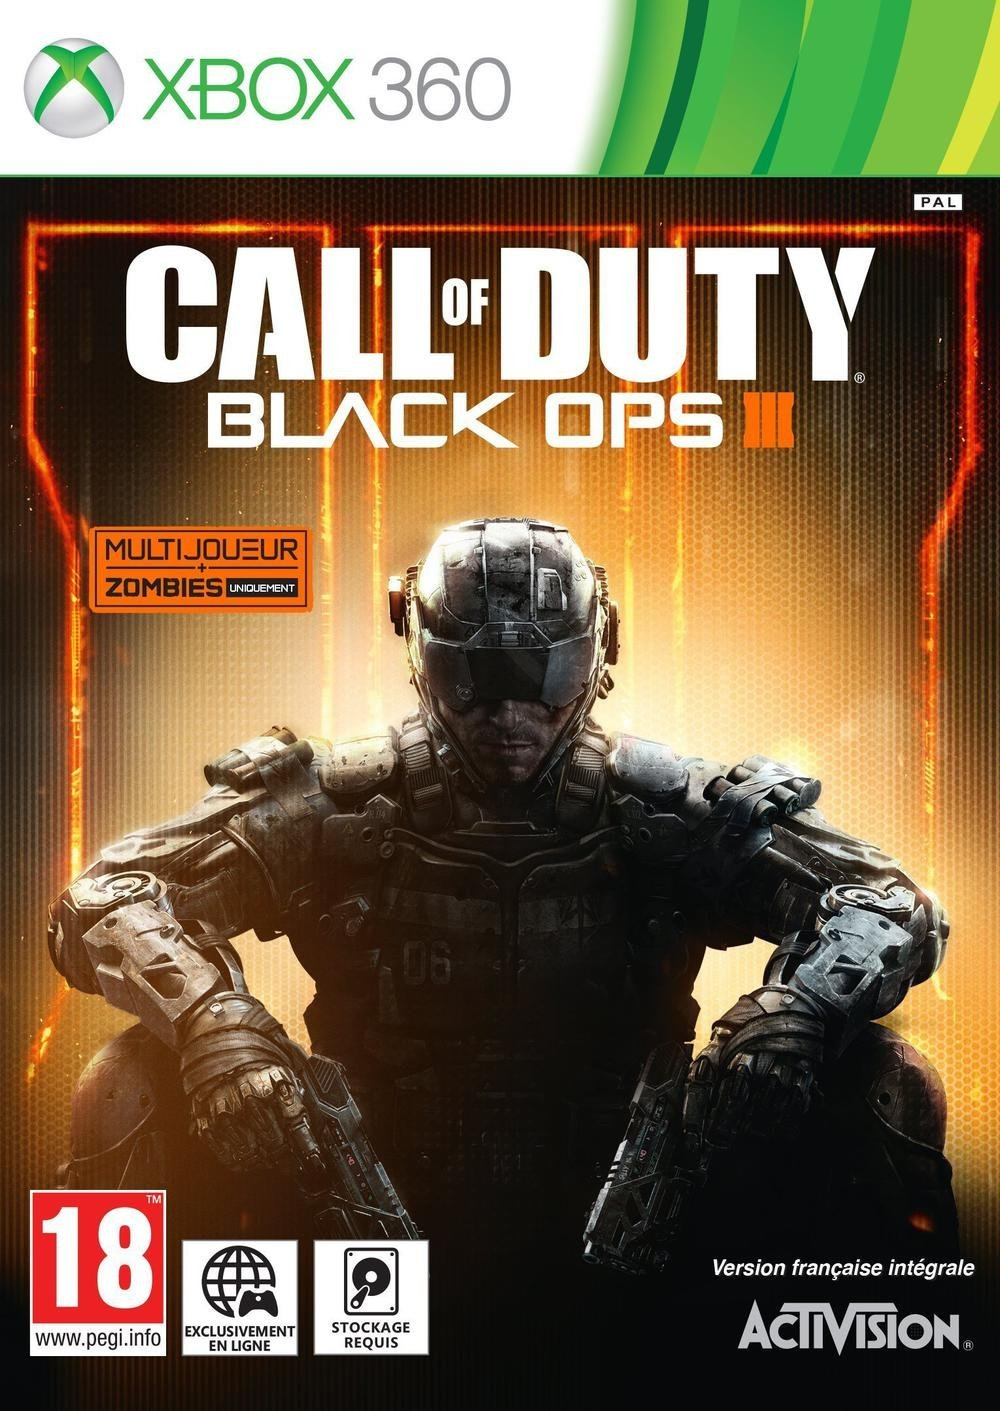 http://uupload.ir/files/faix_call-of-duty-black-ops-iii-xbox360-cover-large.jpg